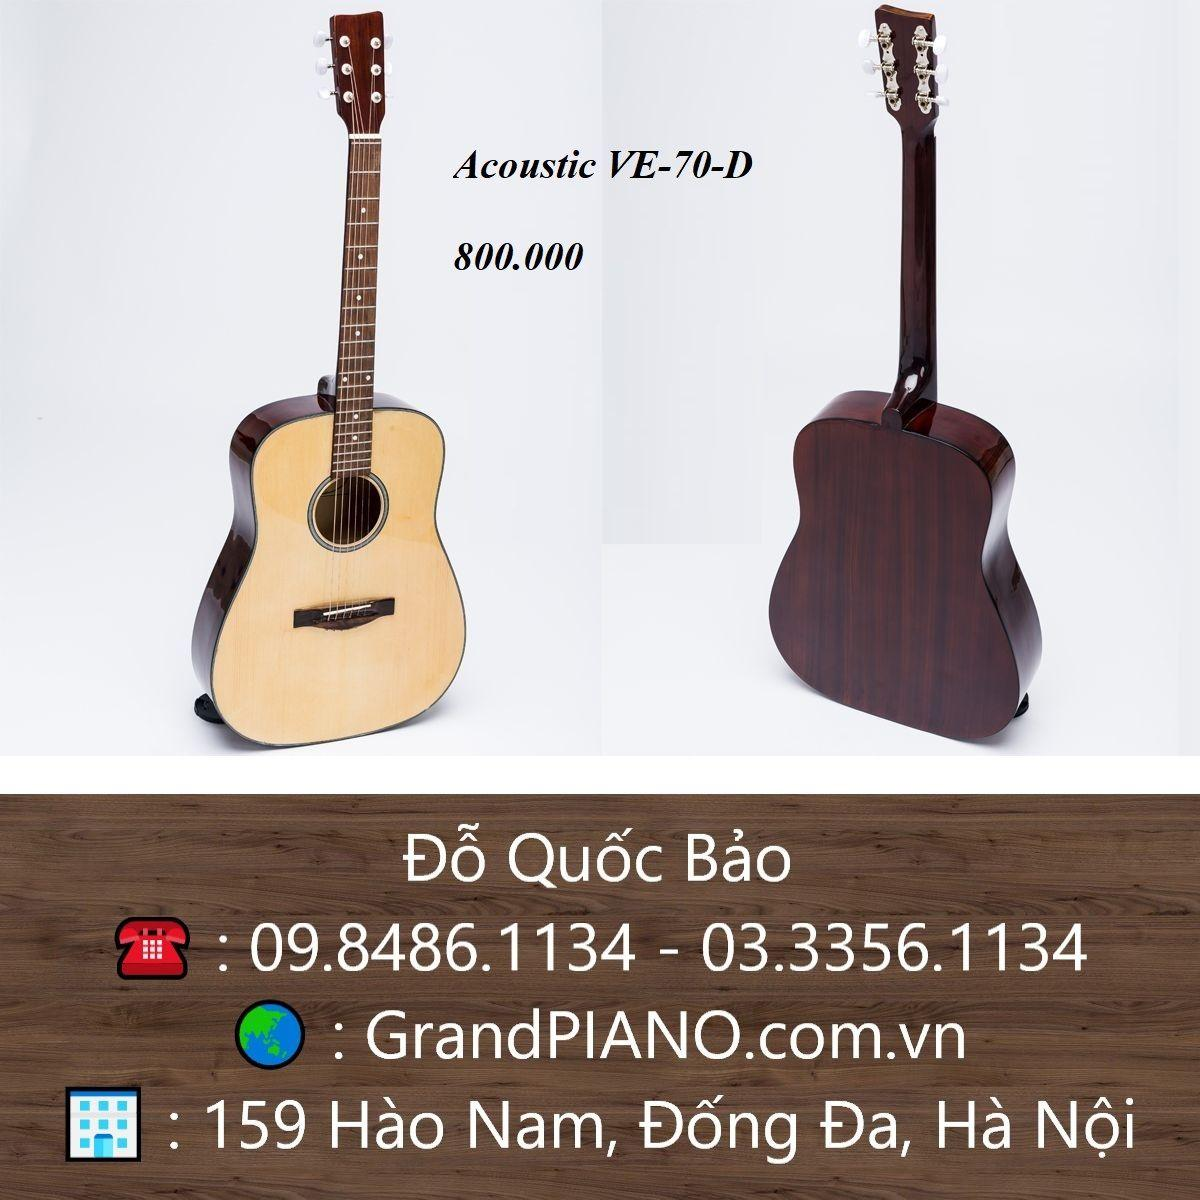 Đàn Guitar Acoustic VE-70-D